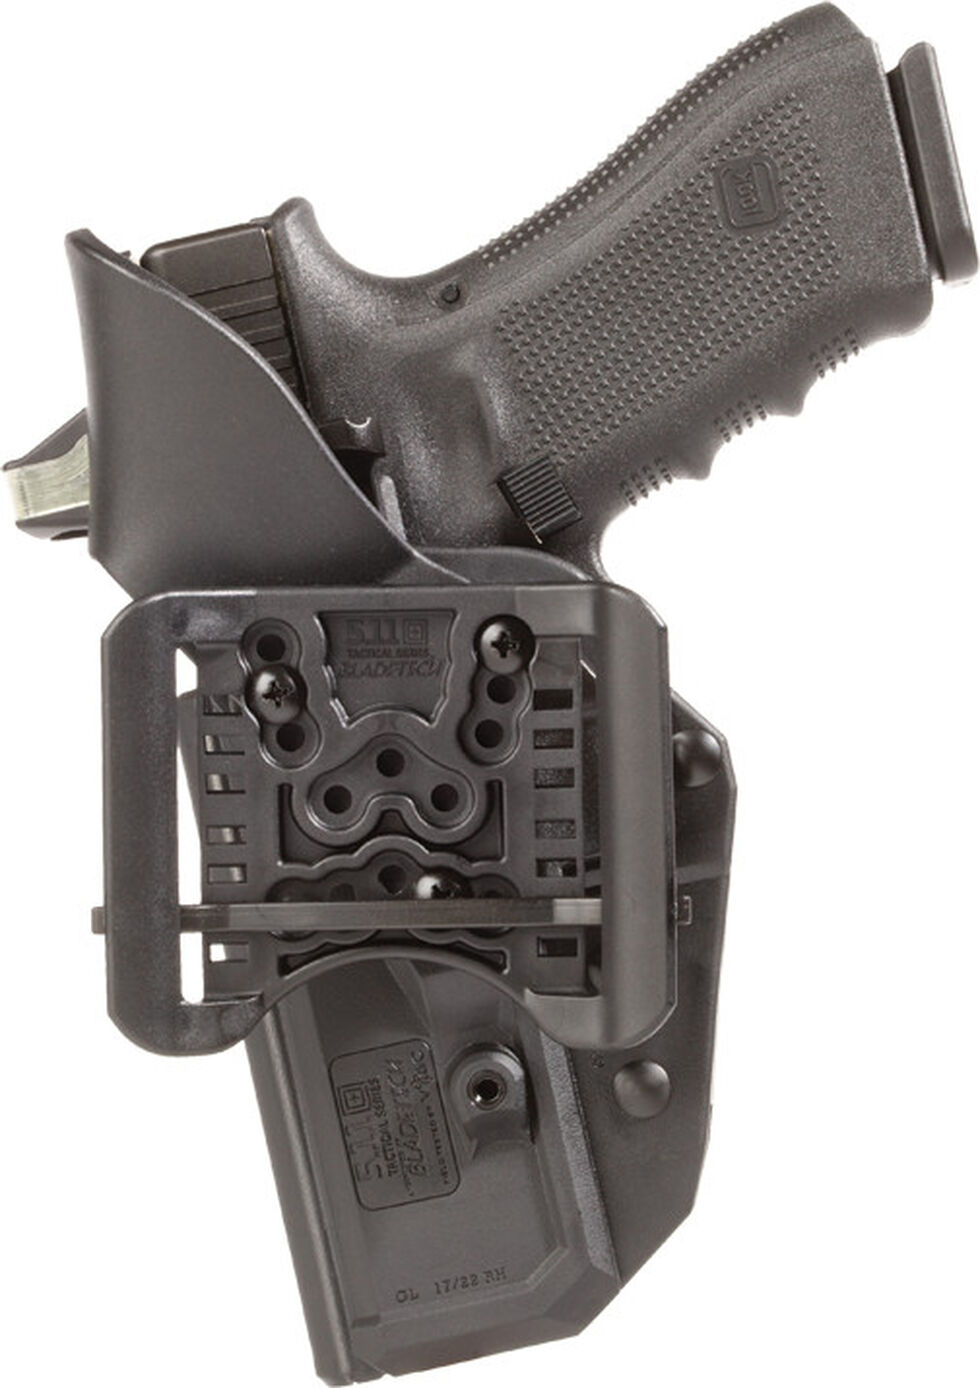 5.11 Tactical Thumbdrive Holster - M&P Compact Series (Right Hand), Black, hi-res